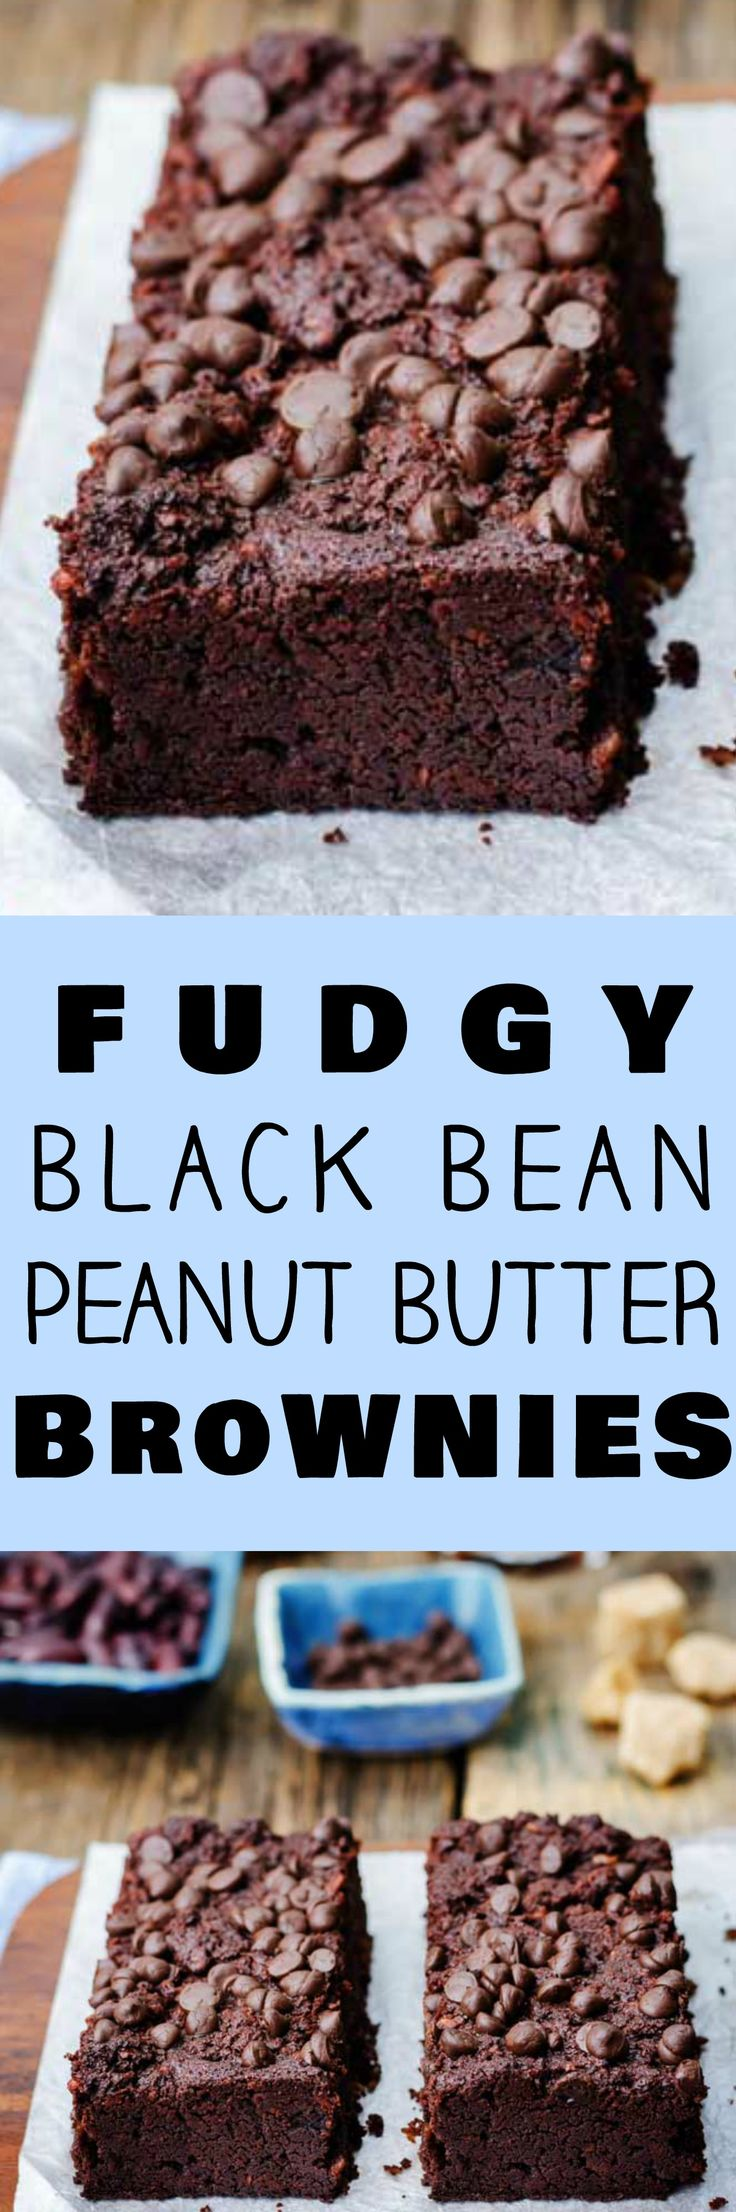 This is the best Fudgy Black Bean Brownies recipe there is! I've won a baking contest with these brownies! These easy to make brownies are made with canned black beans and peanut butter making them extra fudgy and more healthy than the usual brownie. I lo